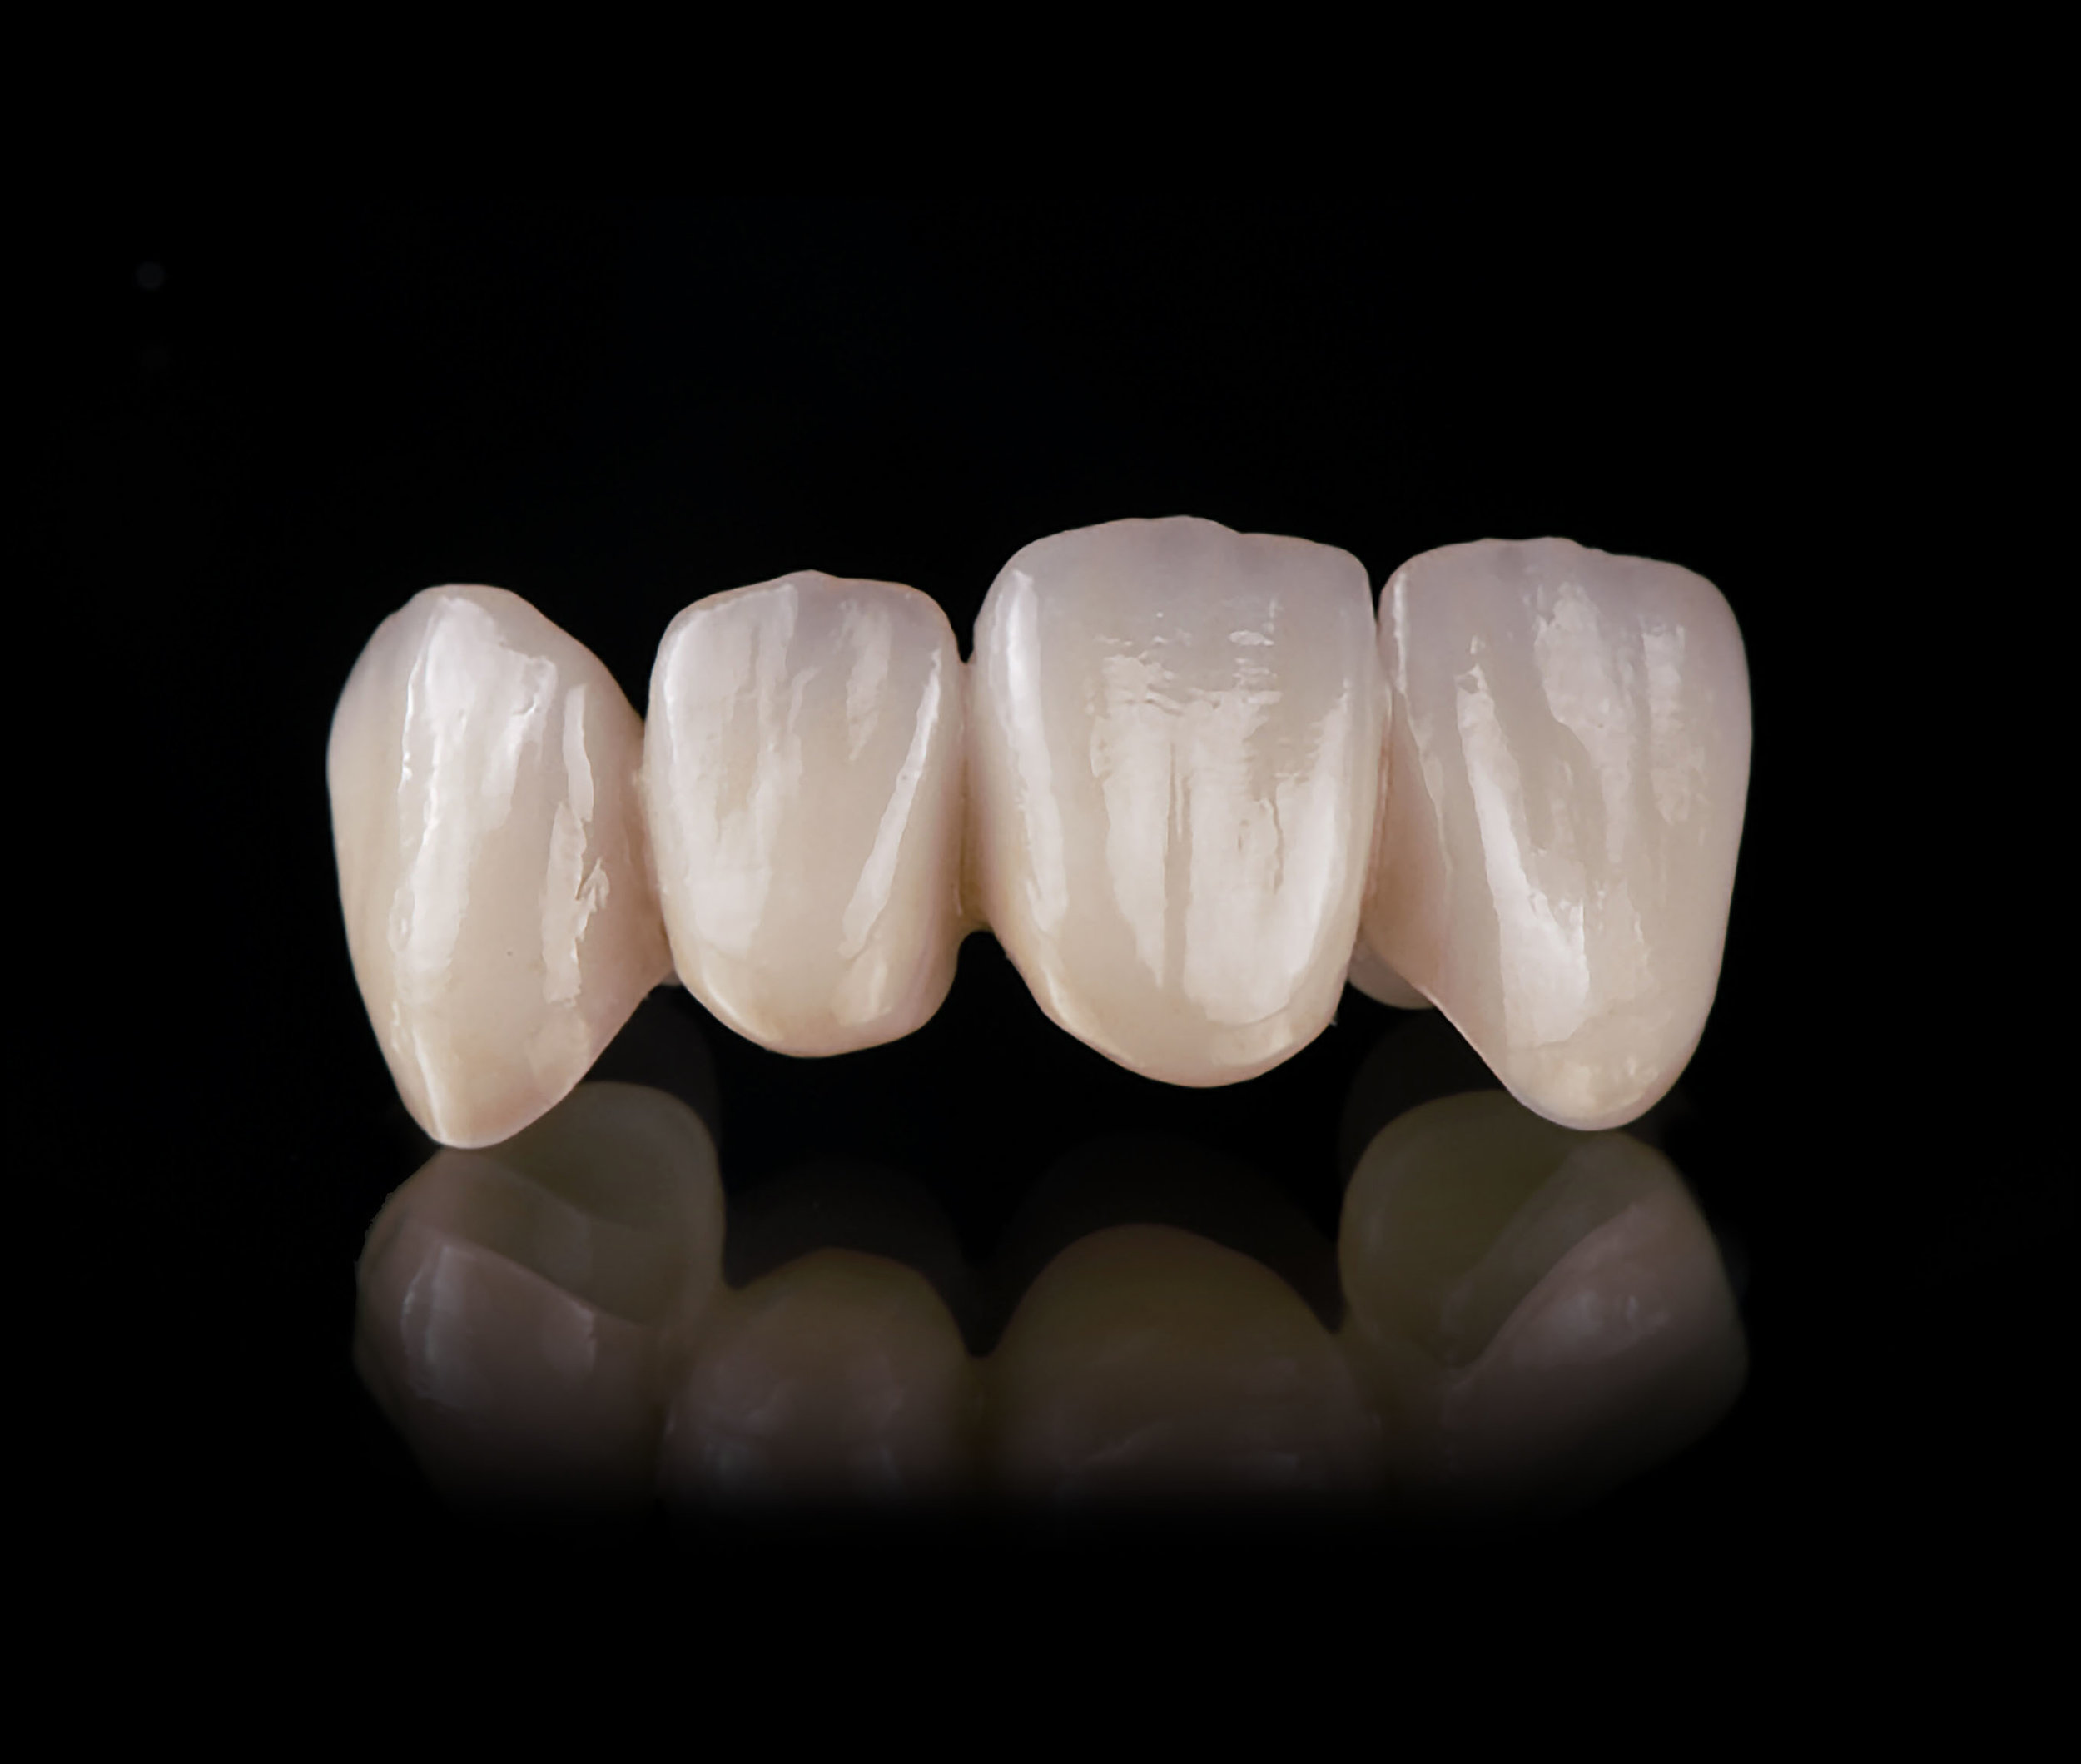 Unprecedented Blend of Esthetics & Strength - Honoring MicroDental's legacy of esthetics and innovation, our team is proud to introduce the next generation of all-ceramics, MicroDental IPS e.max ZirCAD Prime.